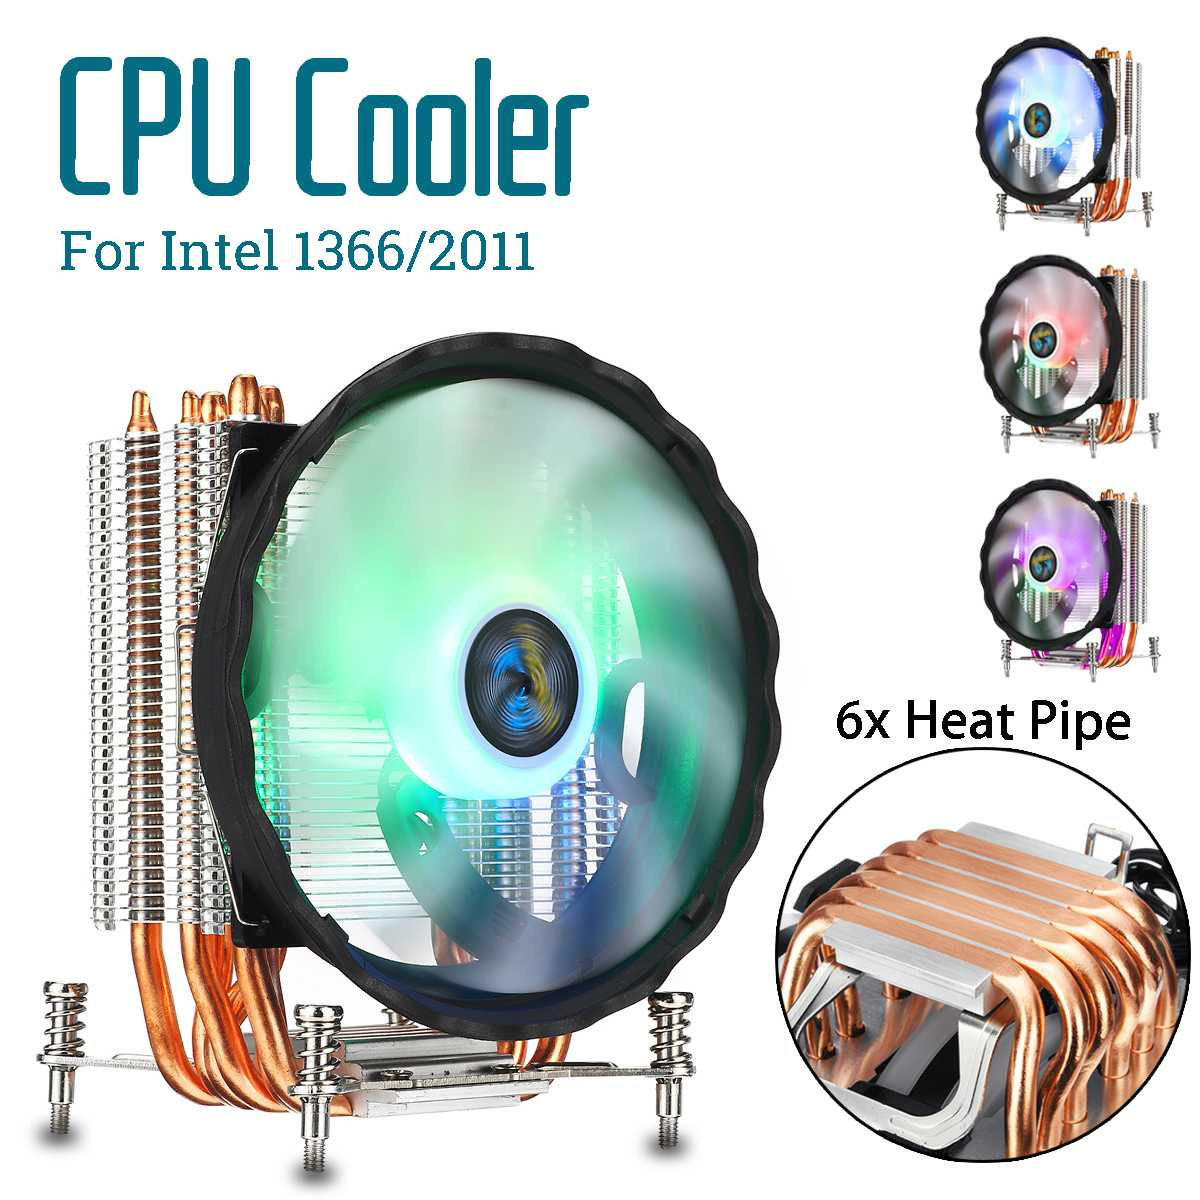 6 Heatpipe CPU Cooler with RGB Fan Cooling Heatsink Quiet 120mm CPU Fan Cooler Radiator for Intel 2011 for Aurora Light